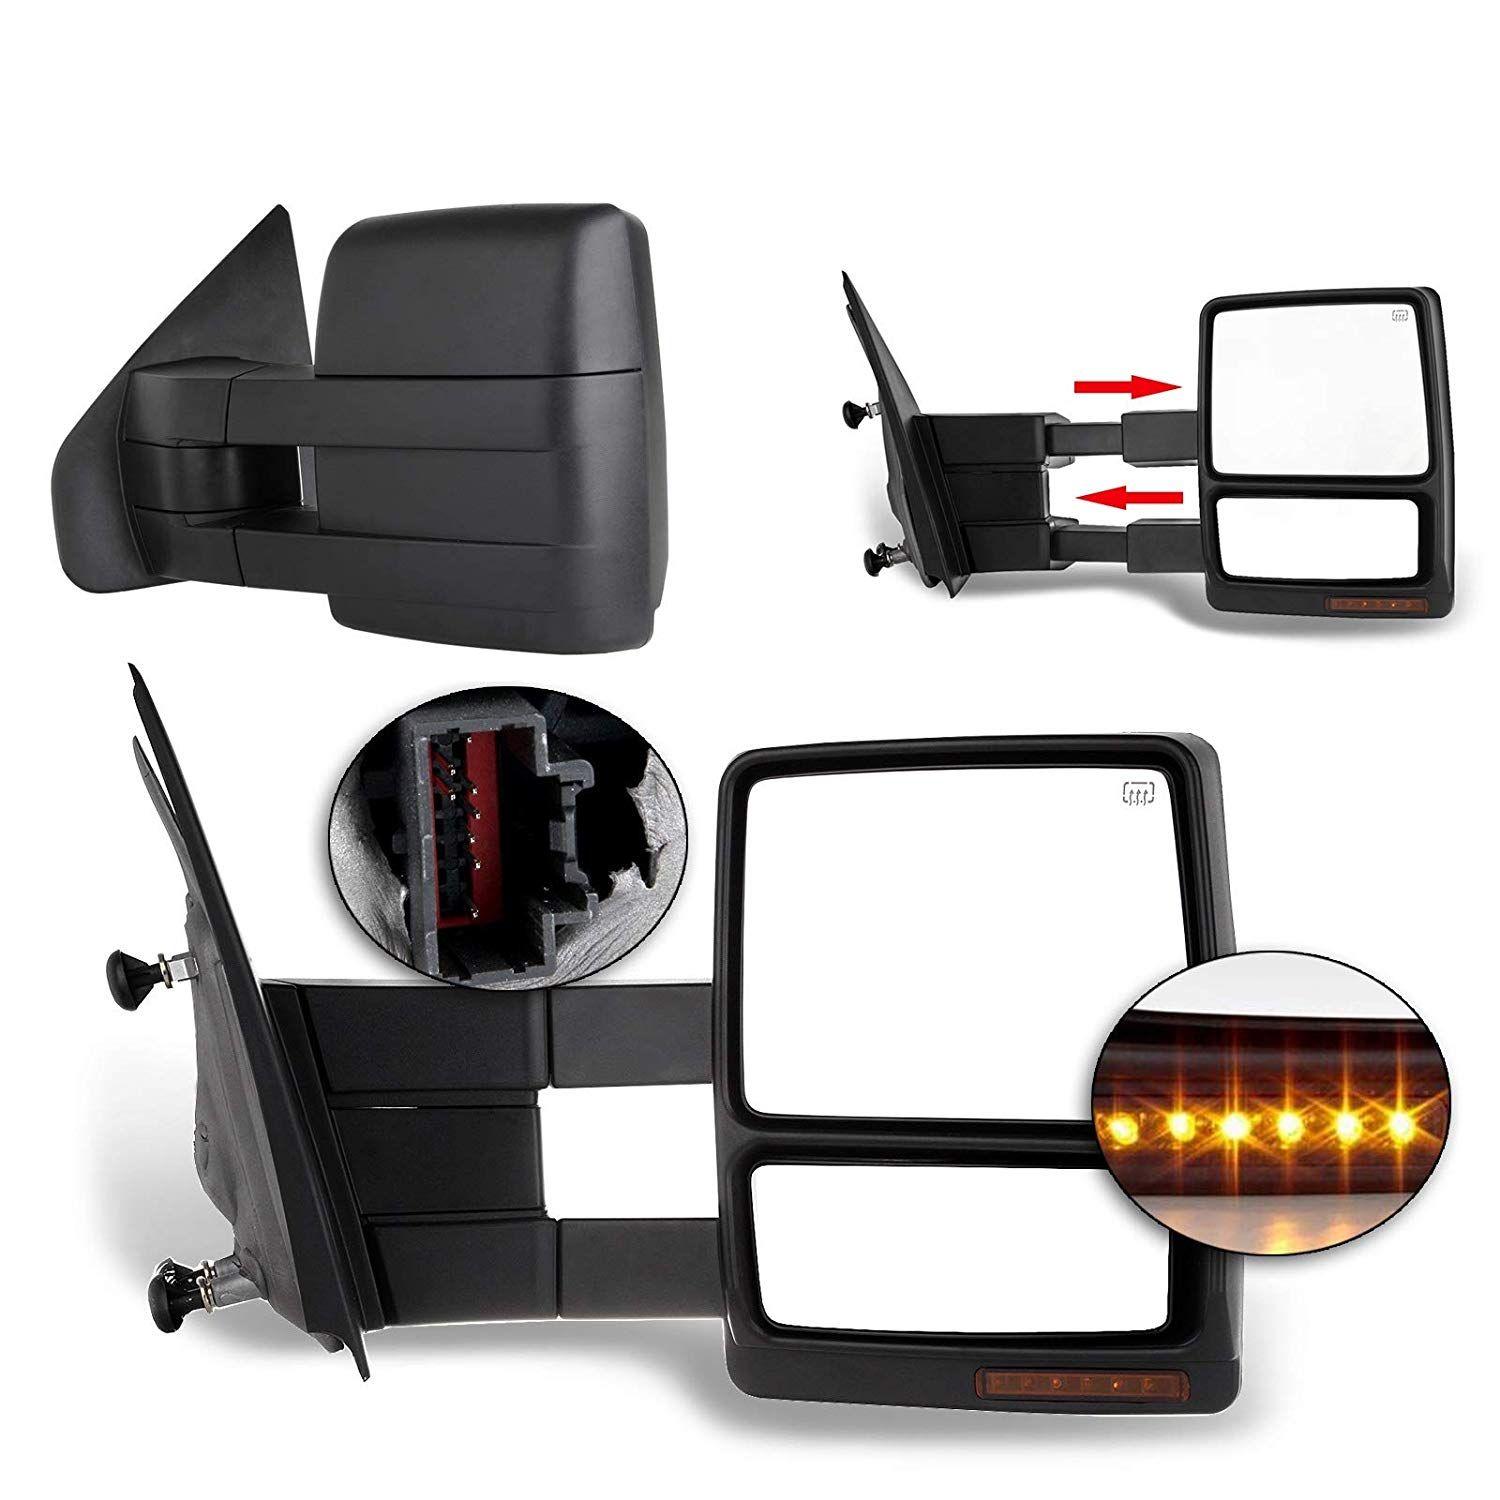 Eccpp Towing Mirrors Replacement Fit For 2004 2014 F150 Pickup Side View Mirrors Power Heated Towing Led Turn Signal Pair Towing Mirrors F150 Towing Mirror